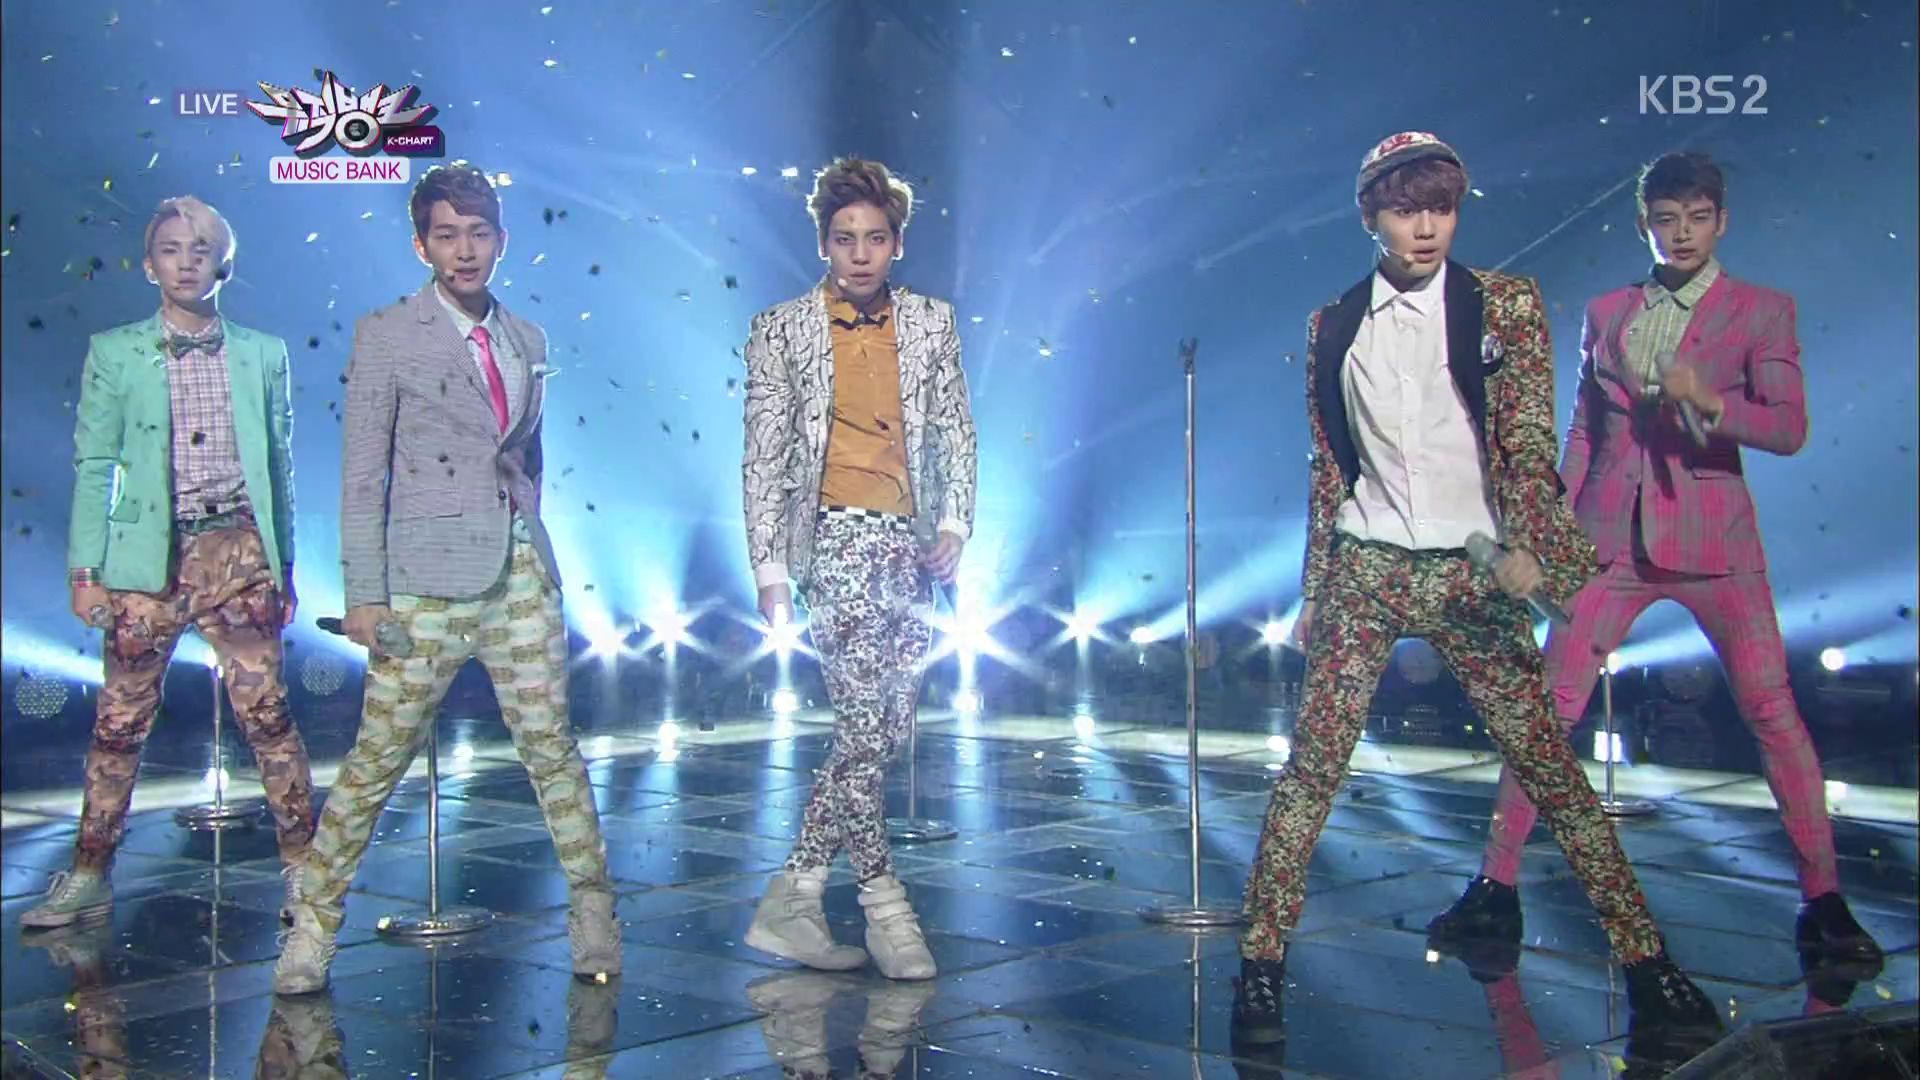 KBS Music Bank 03.15.13 – SHINee Wins Second Week in a Row